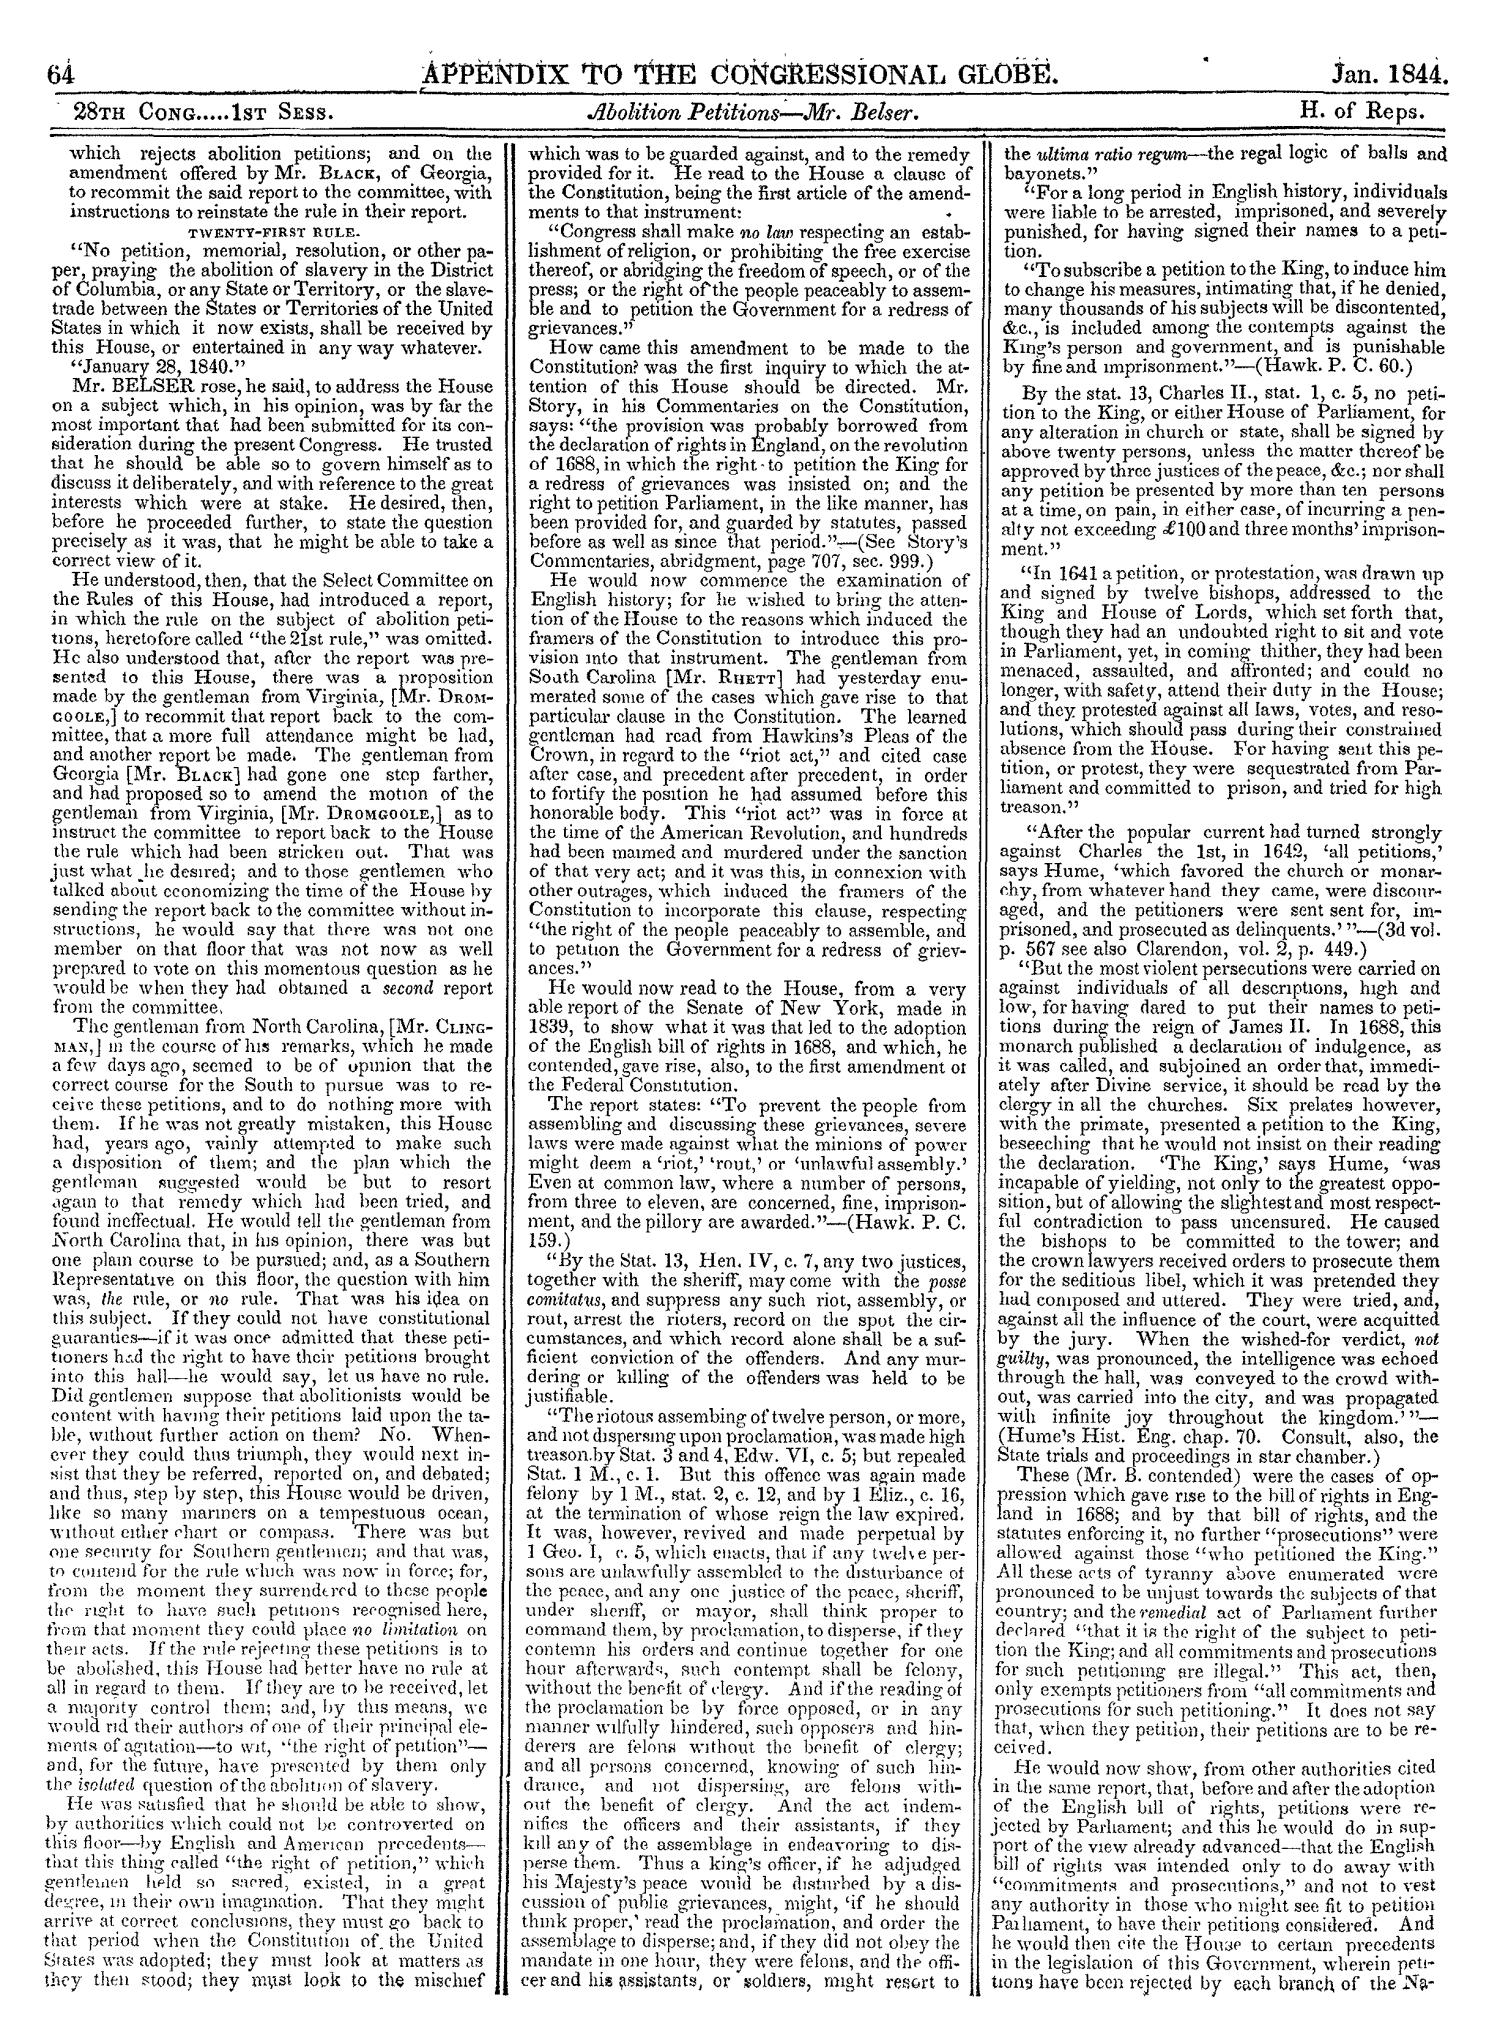 The Congressional Globe, Volume 13, Part 2: Twenty-Eighth Congress, First Session                                                                                                      64